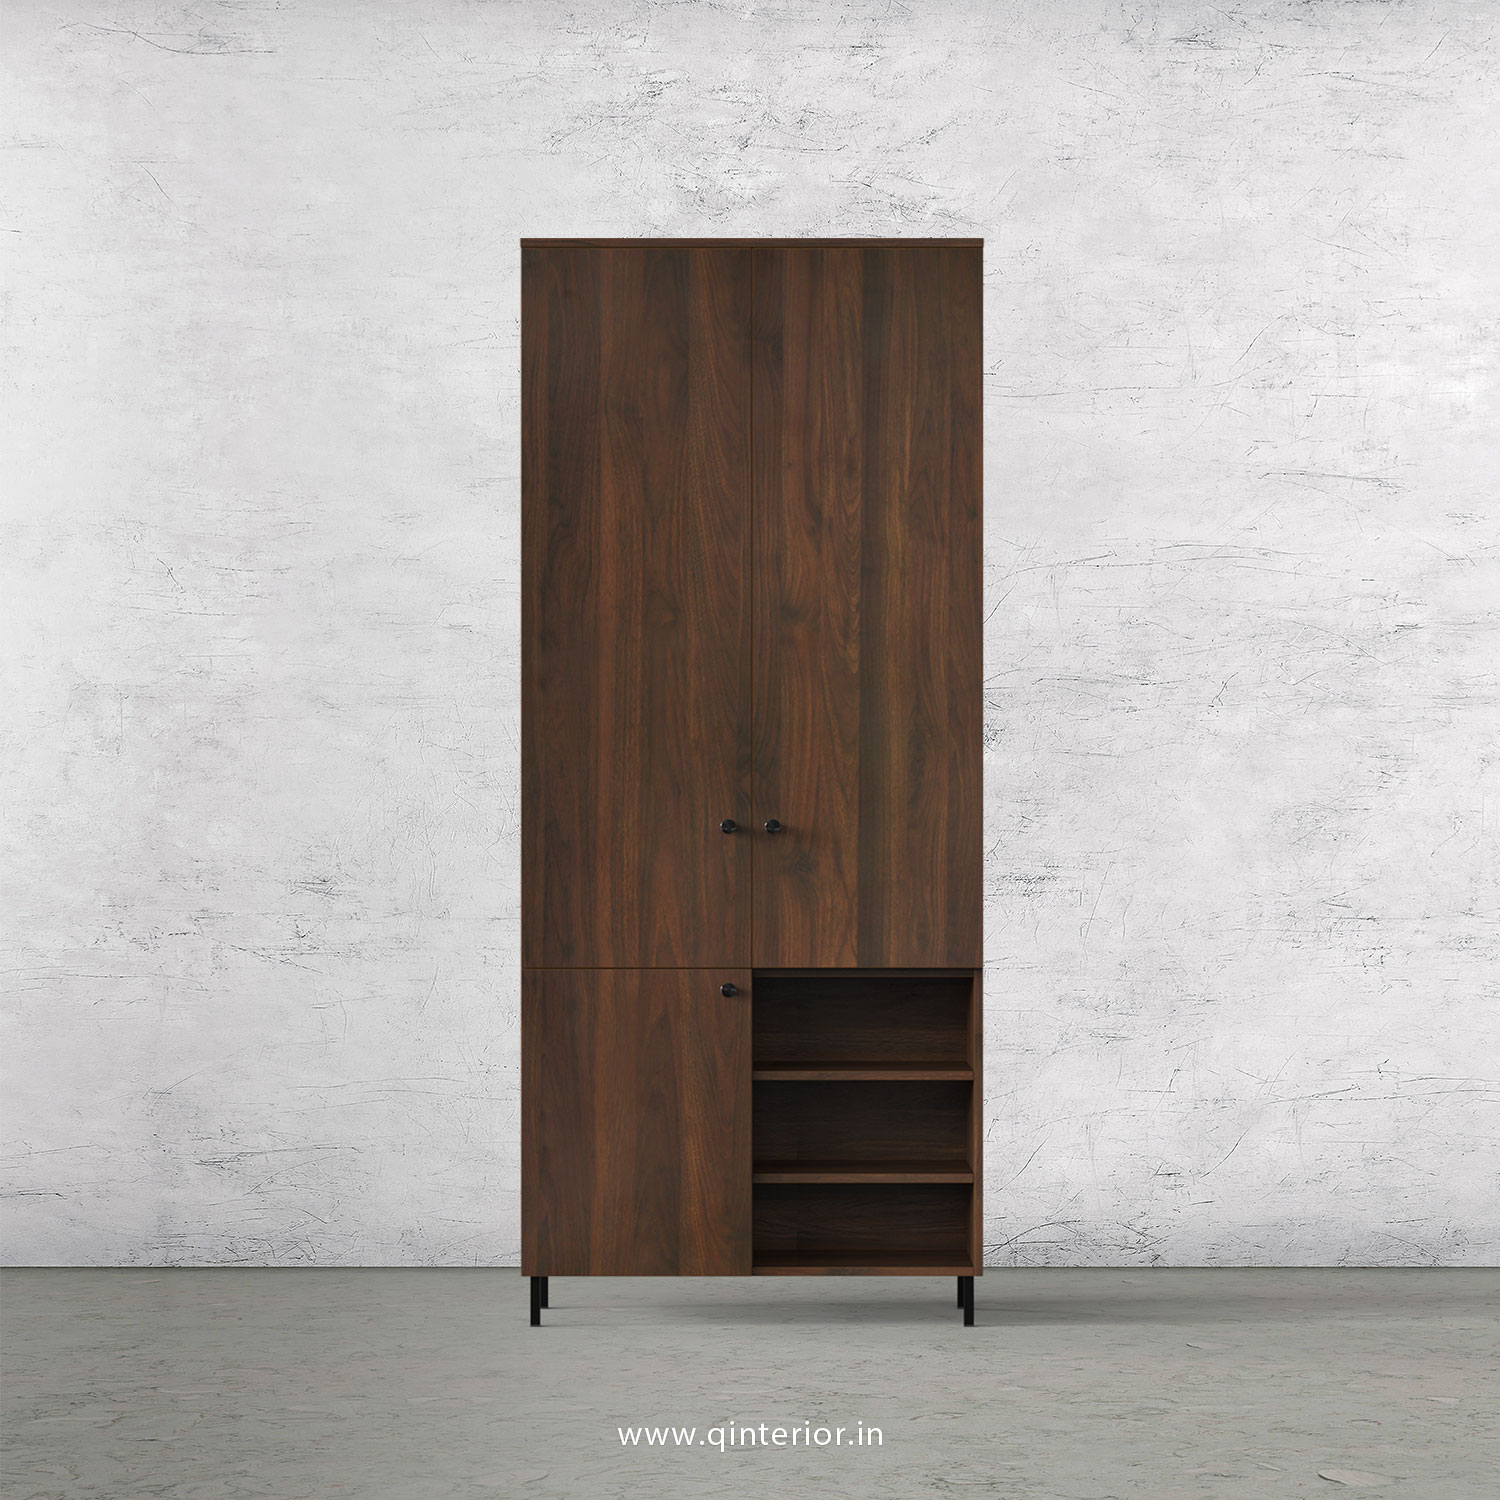 Stable 2 Door Wardrobe in Walnut Finish – DWRD038 C1